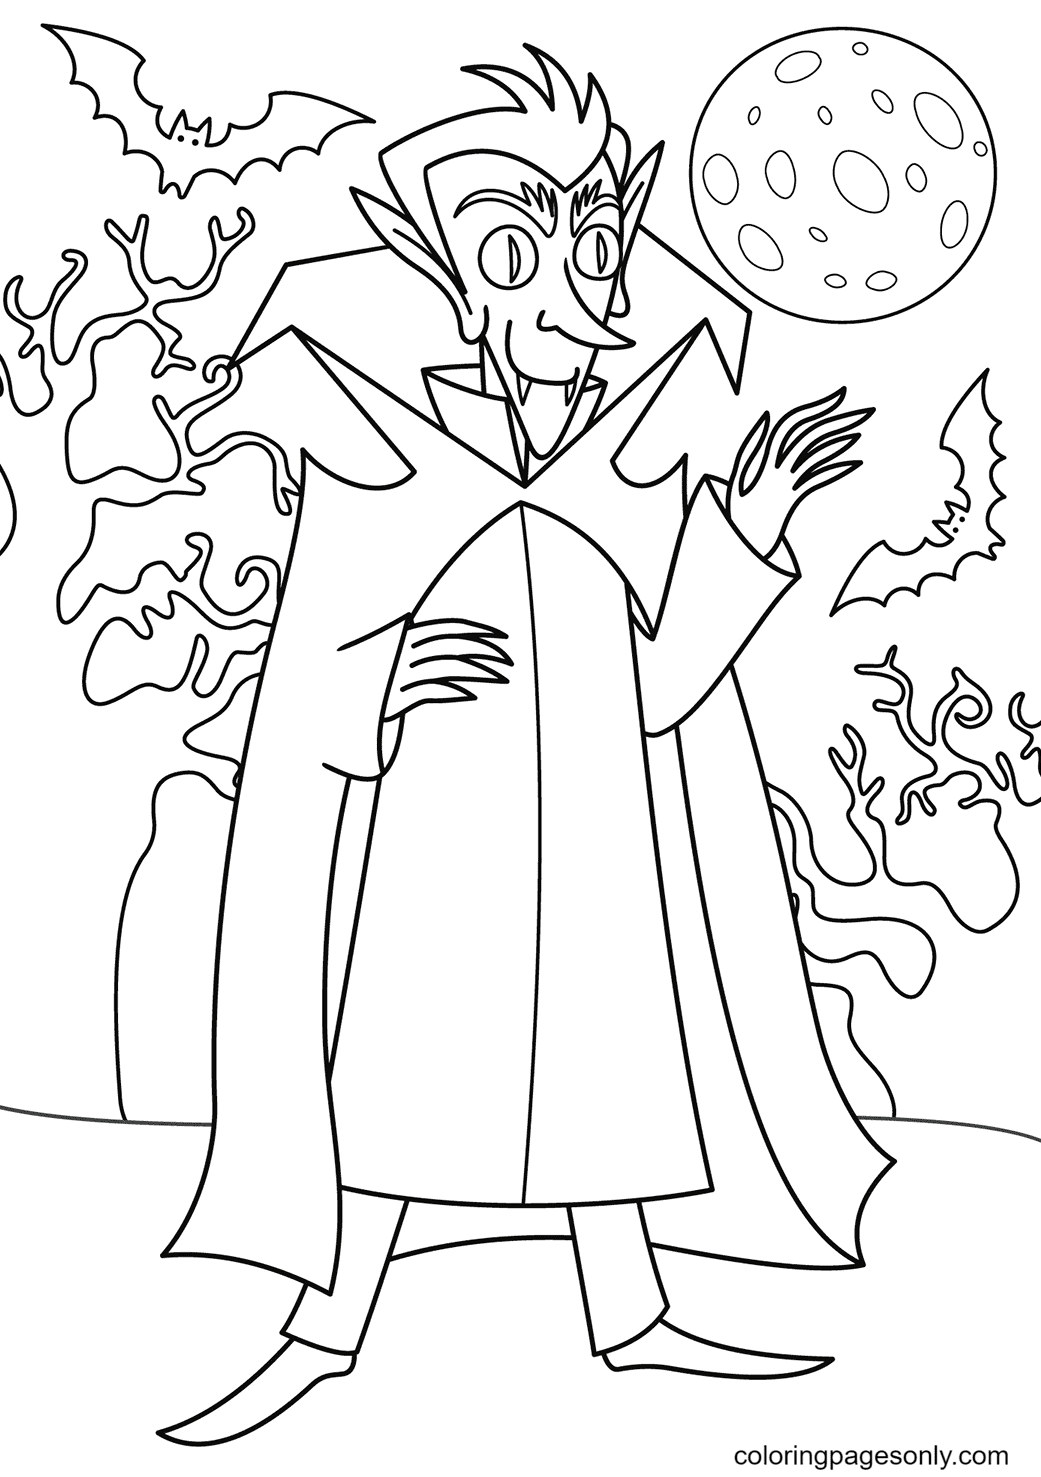 Vampire with Moon and Bat Coloring Page